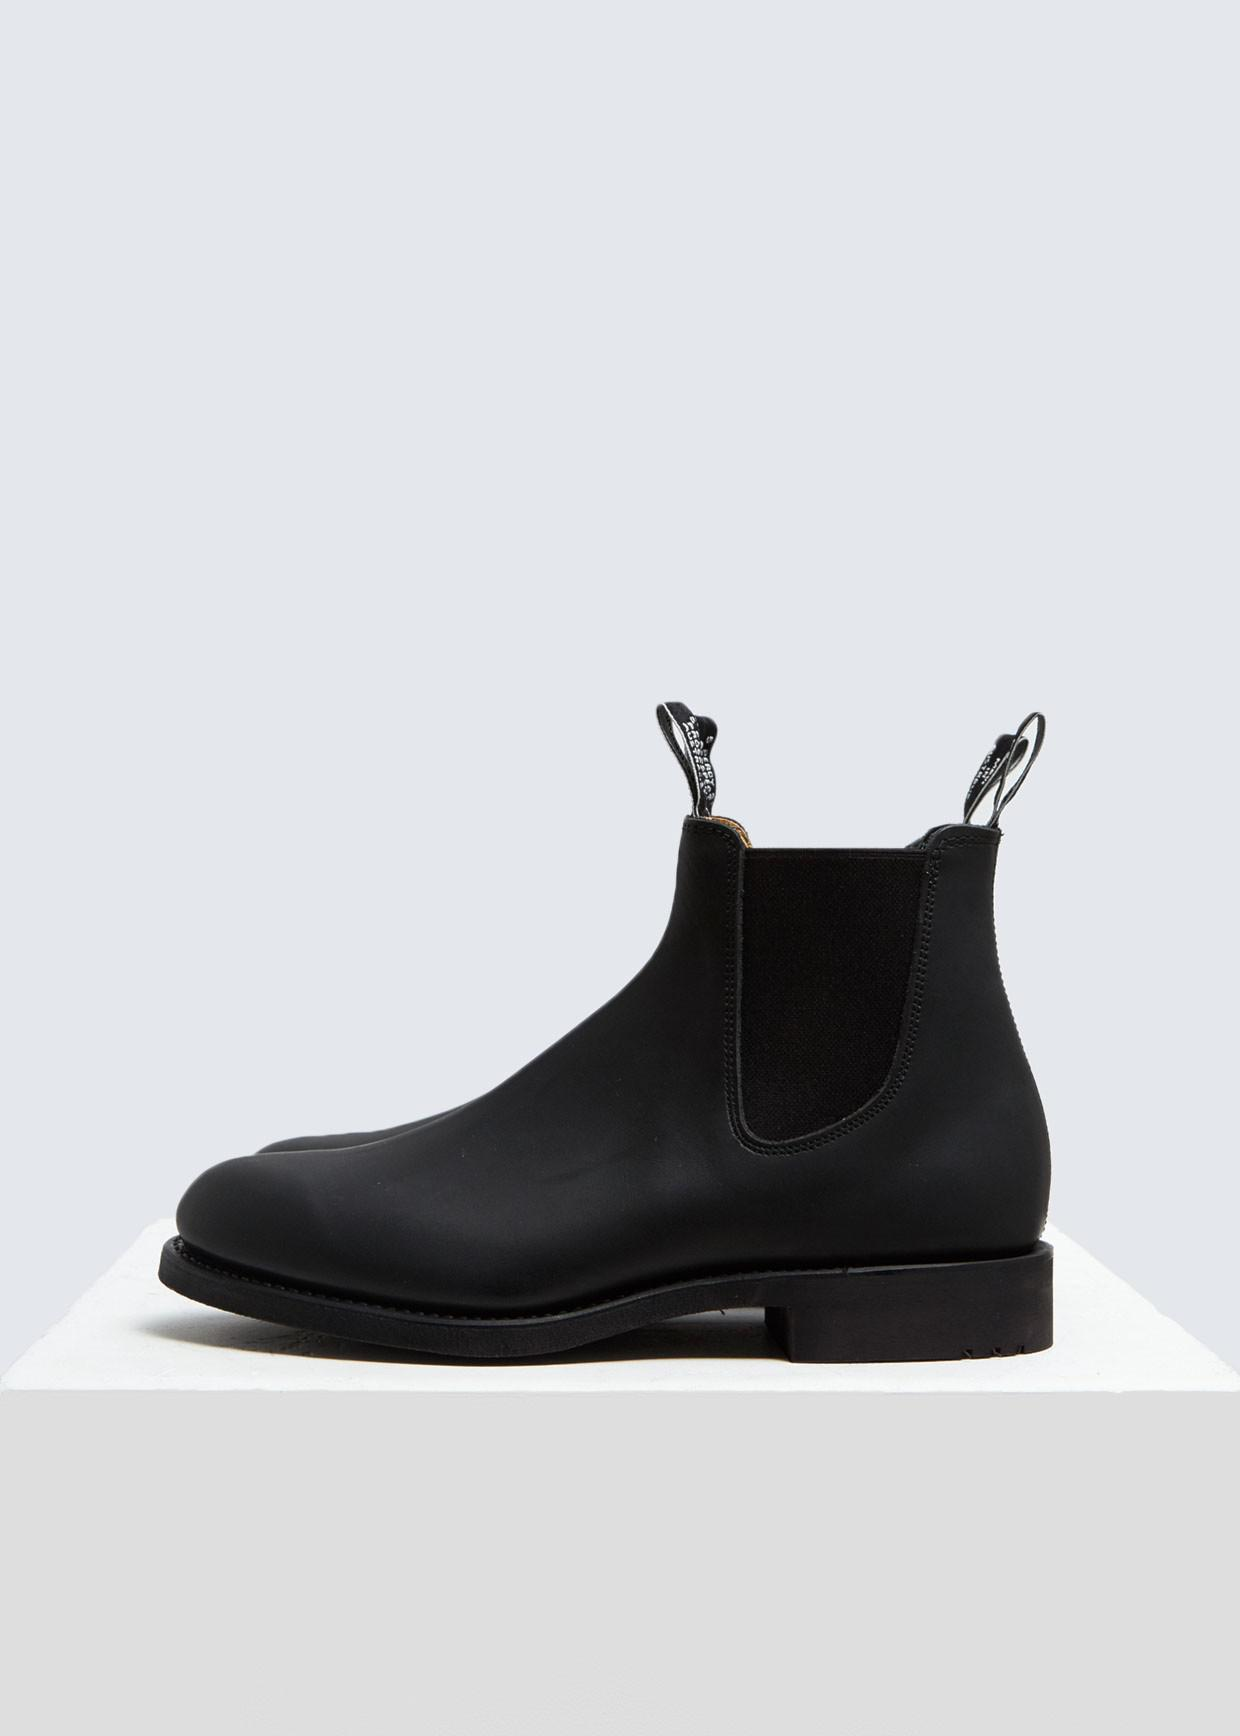 0898e2af0f5 R.M. Williams Gardener Greasy Kip Leather Boot in Black for Men - Lyst